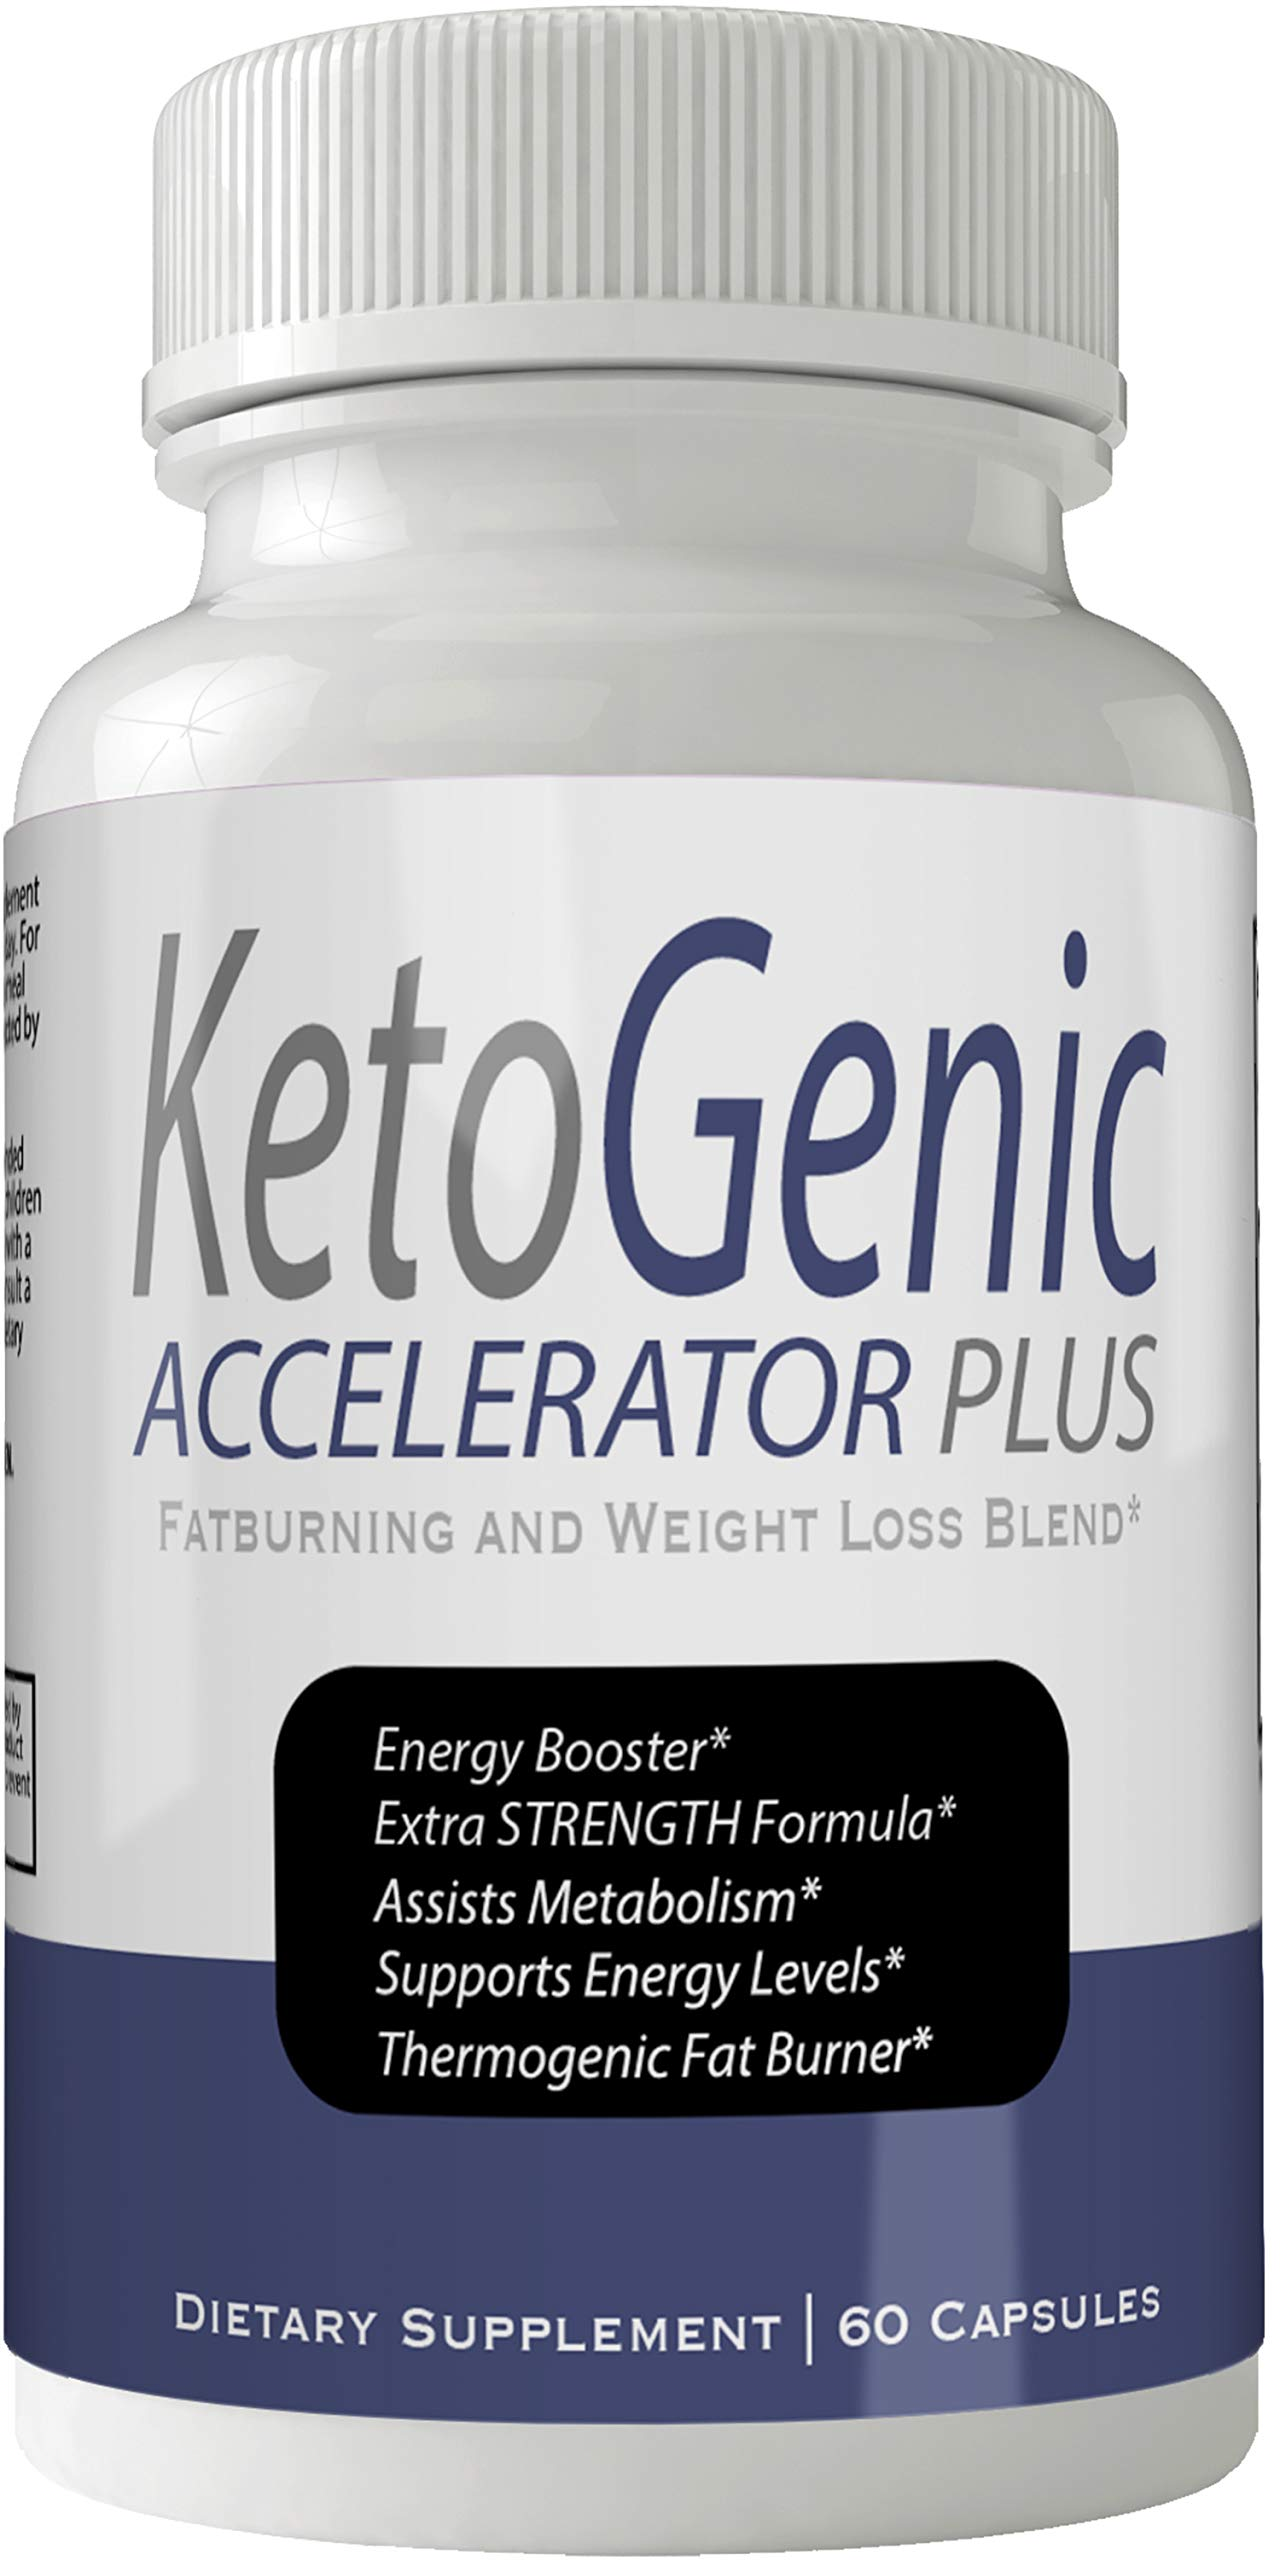 Ketogenic Accelerator Plus Pills Weight Loss Keto Blend Diet Capsules, Weightloss Lean Fat Burner, Advanced Thermal Fat Loss Supplement for Women and Men by nutra4health LLC